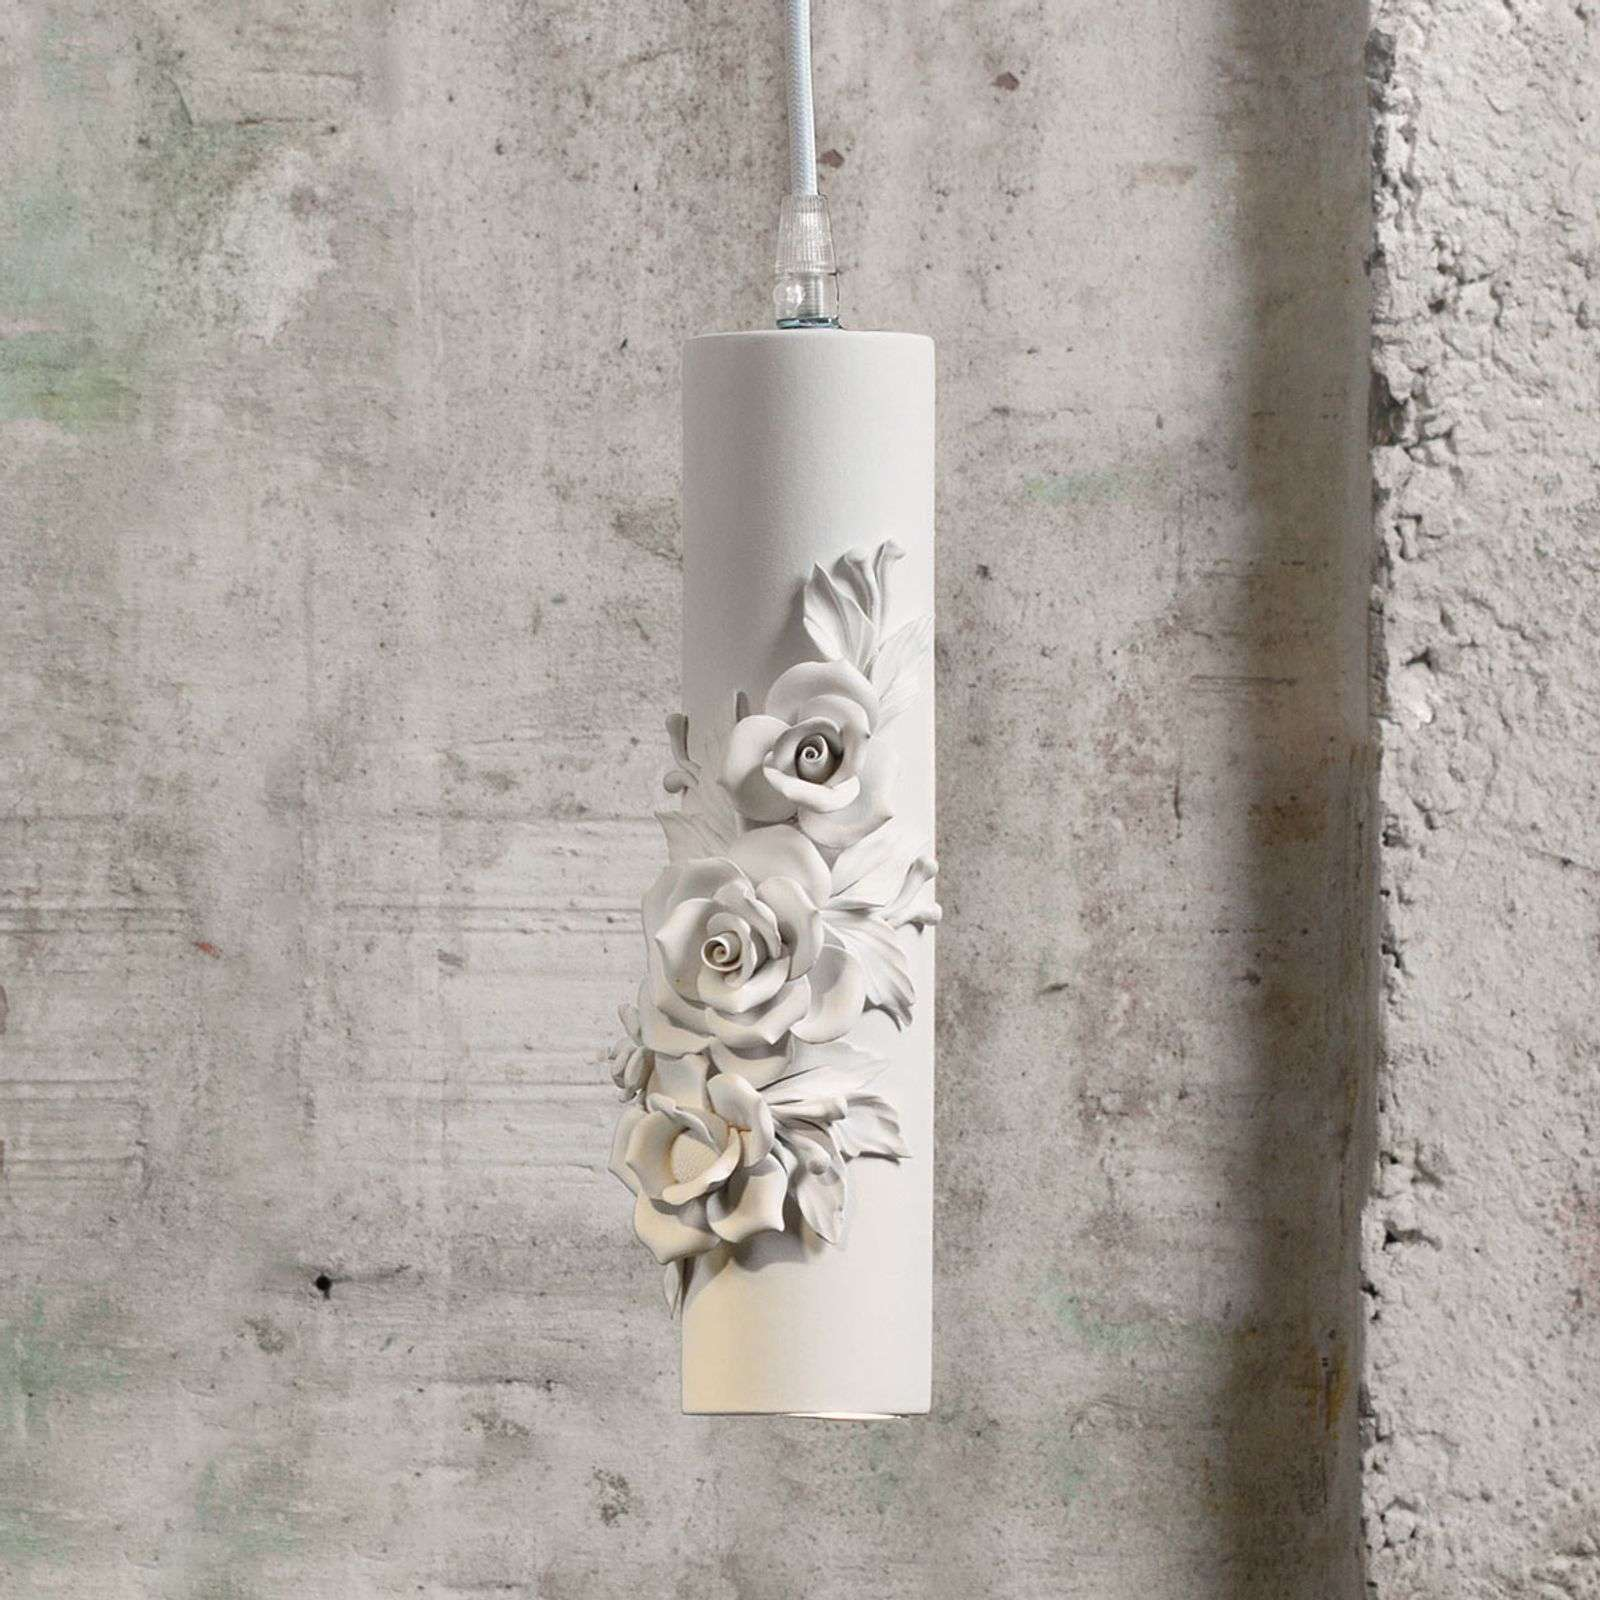 Suspension LED design Capodimonte en céramique